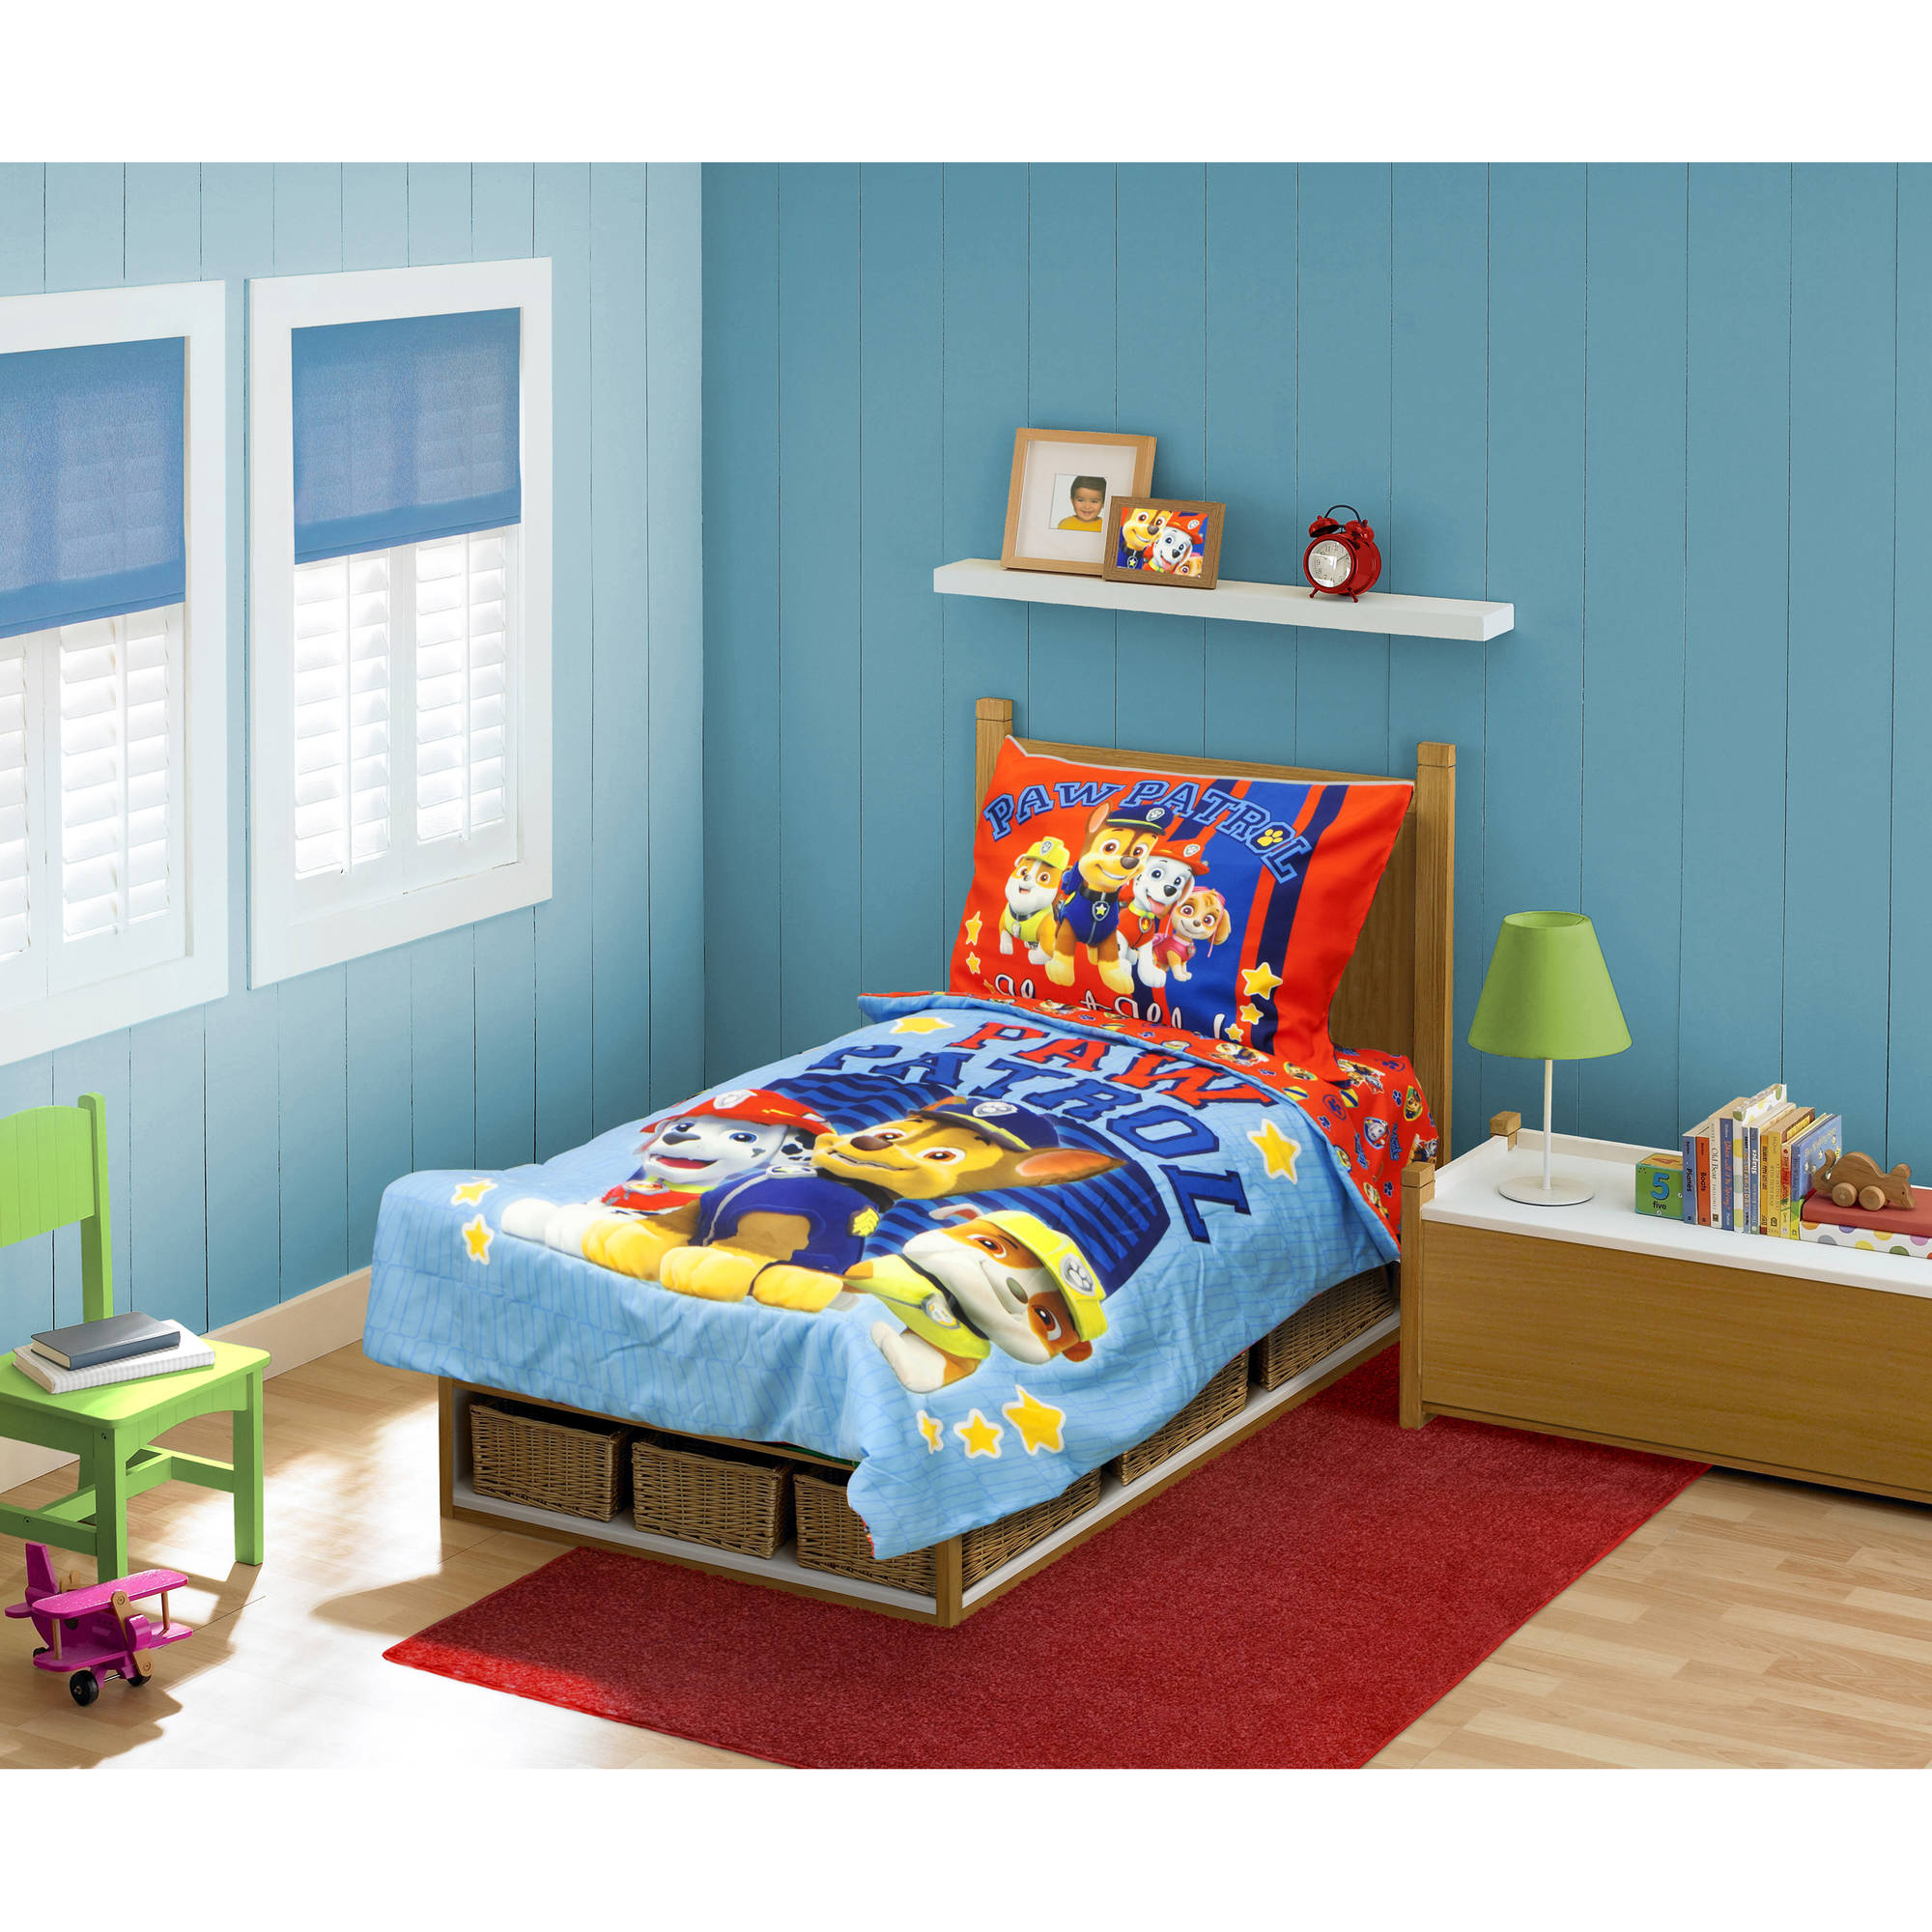 toddler bedroom sets babyboom nick jr paw patrol 4 toddler bedding set 13537